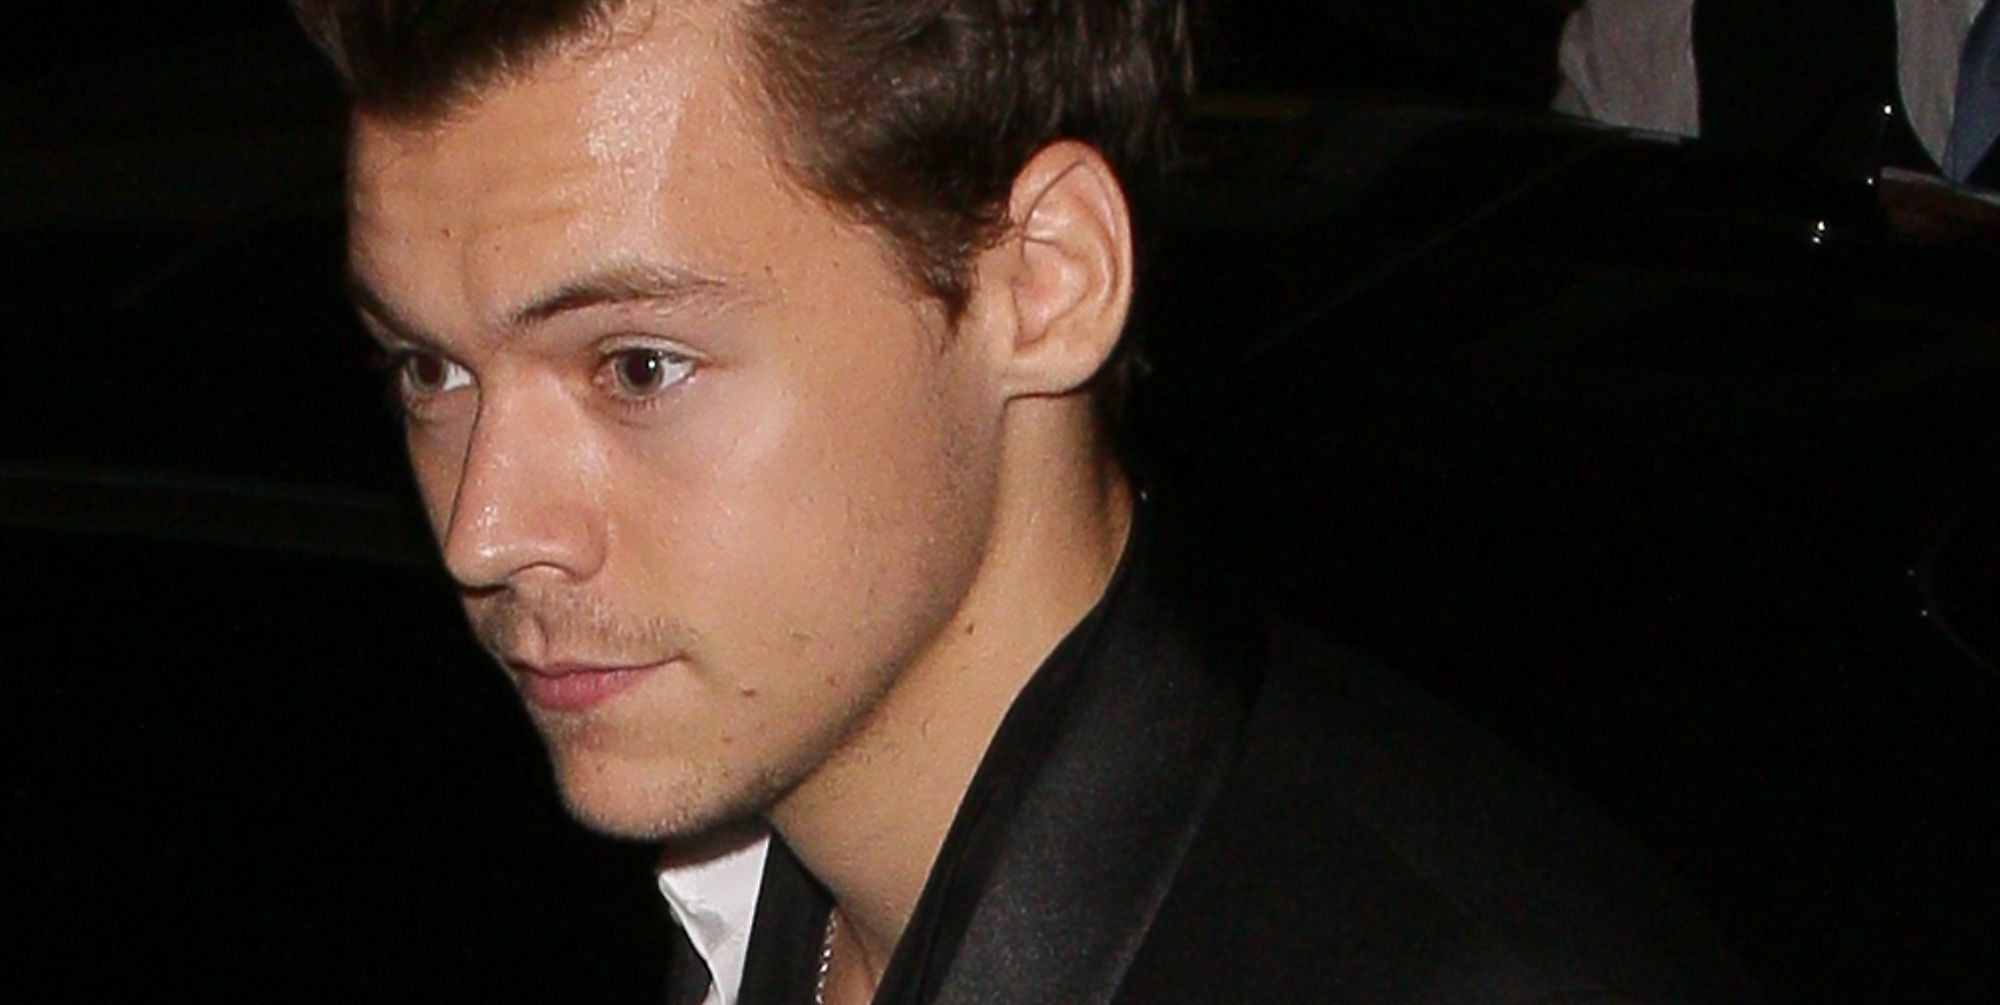 Harry Styles shares first campaign pictures ahead of solo career